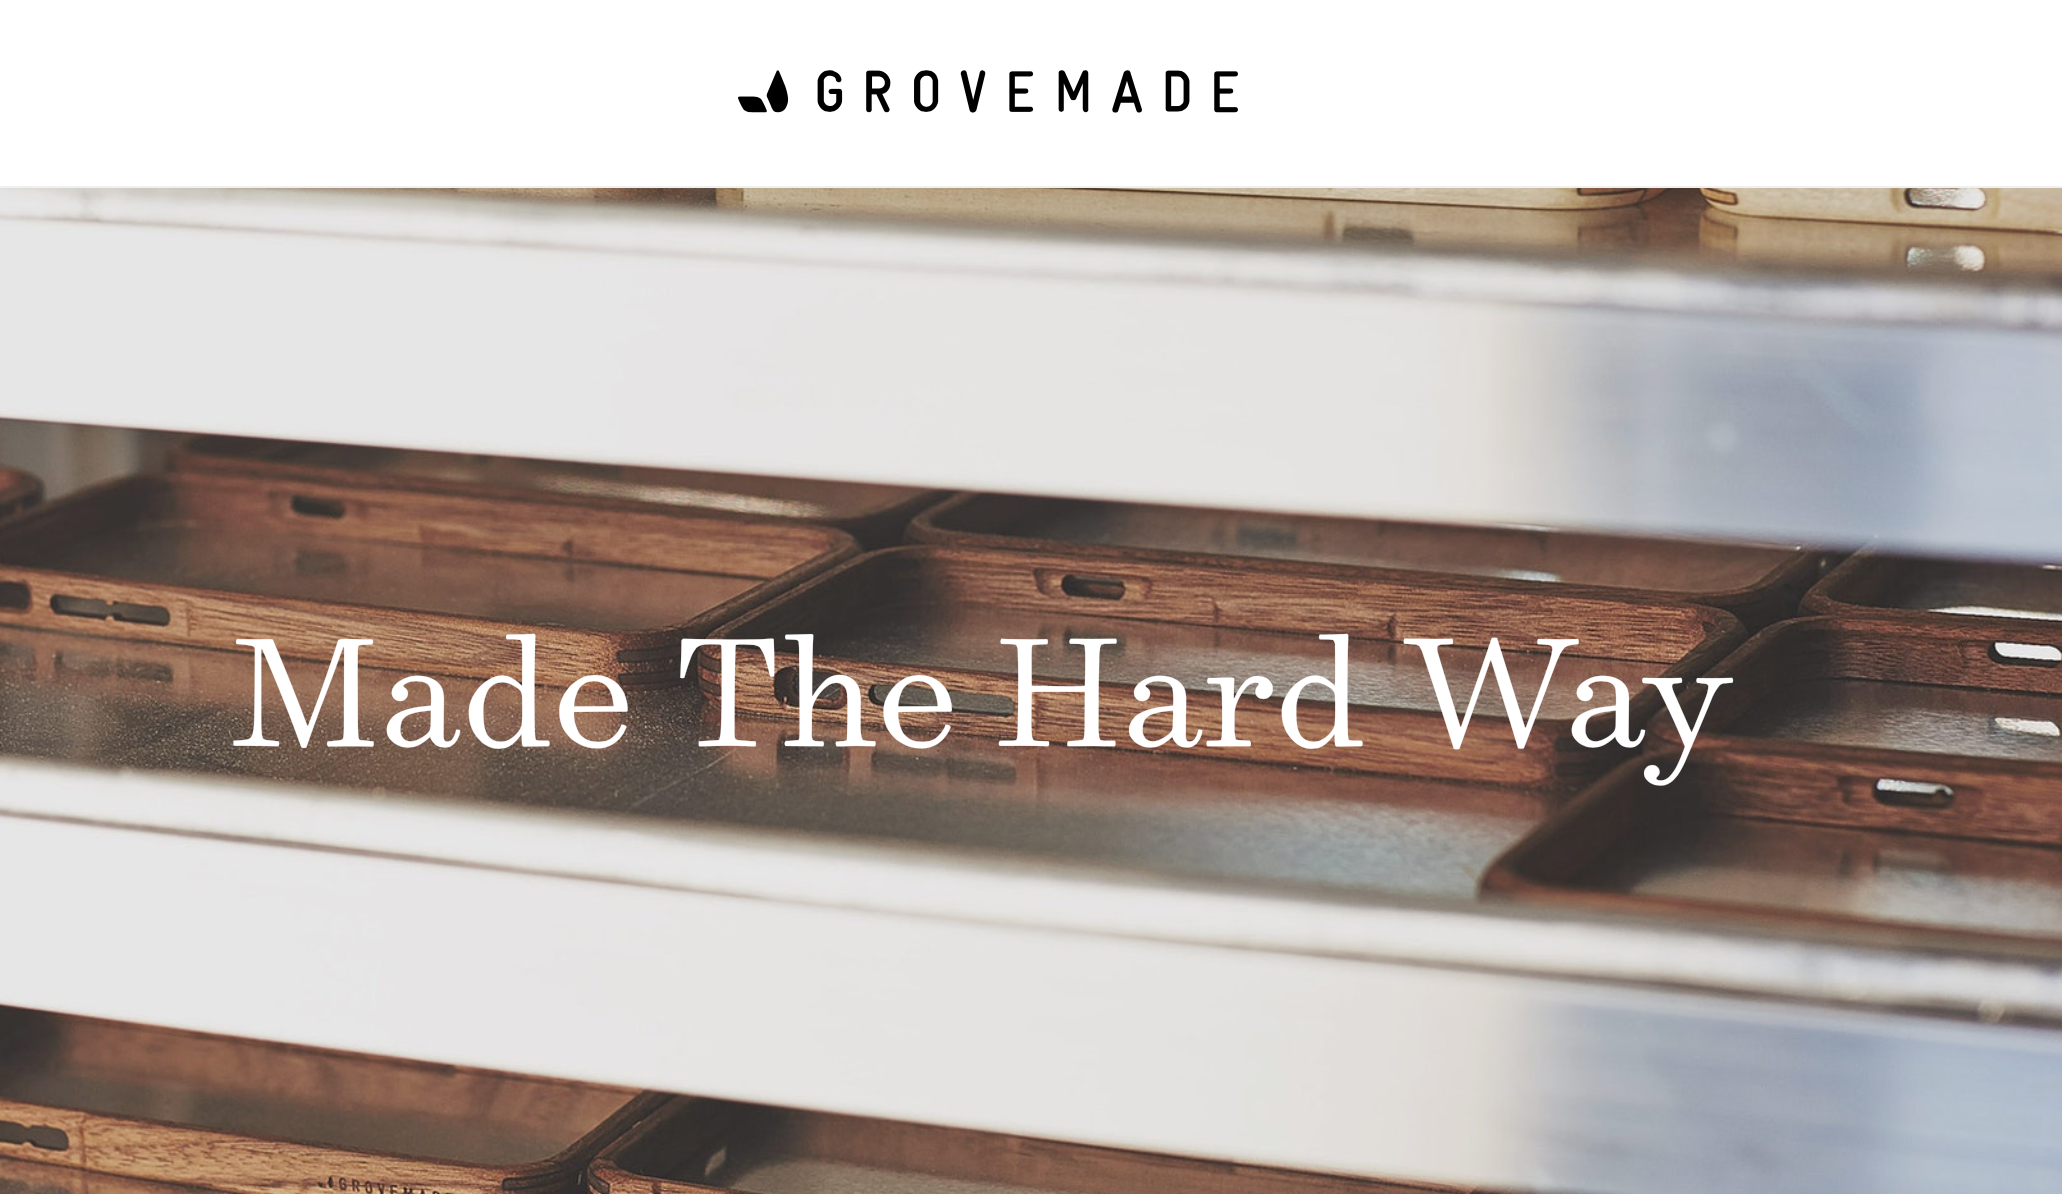 grovemade  spring 14 concepting and writing campaign line and web copy